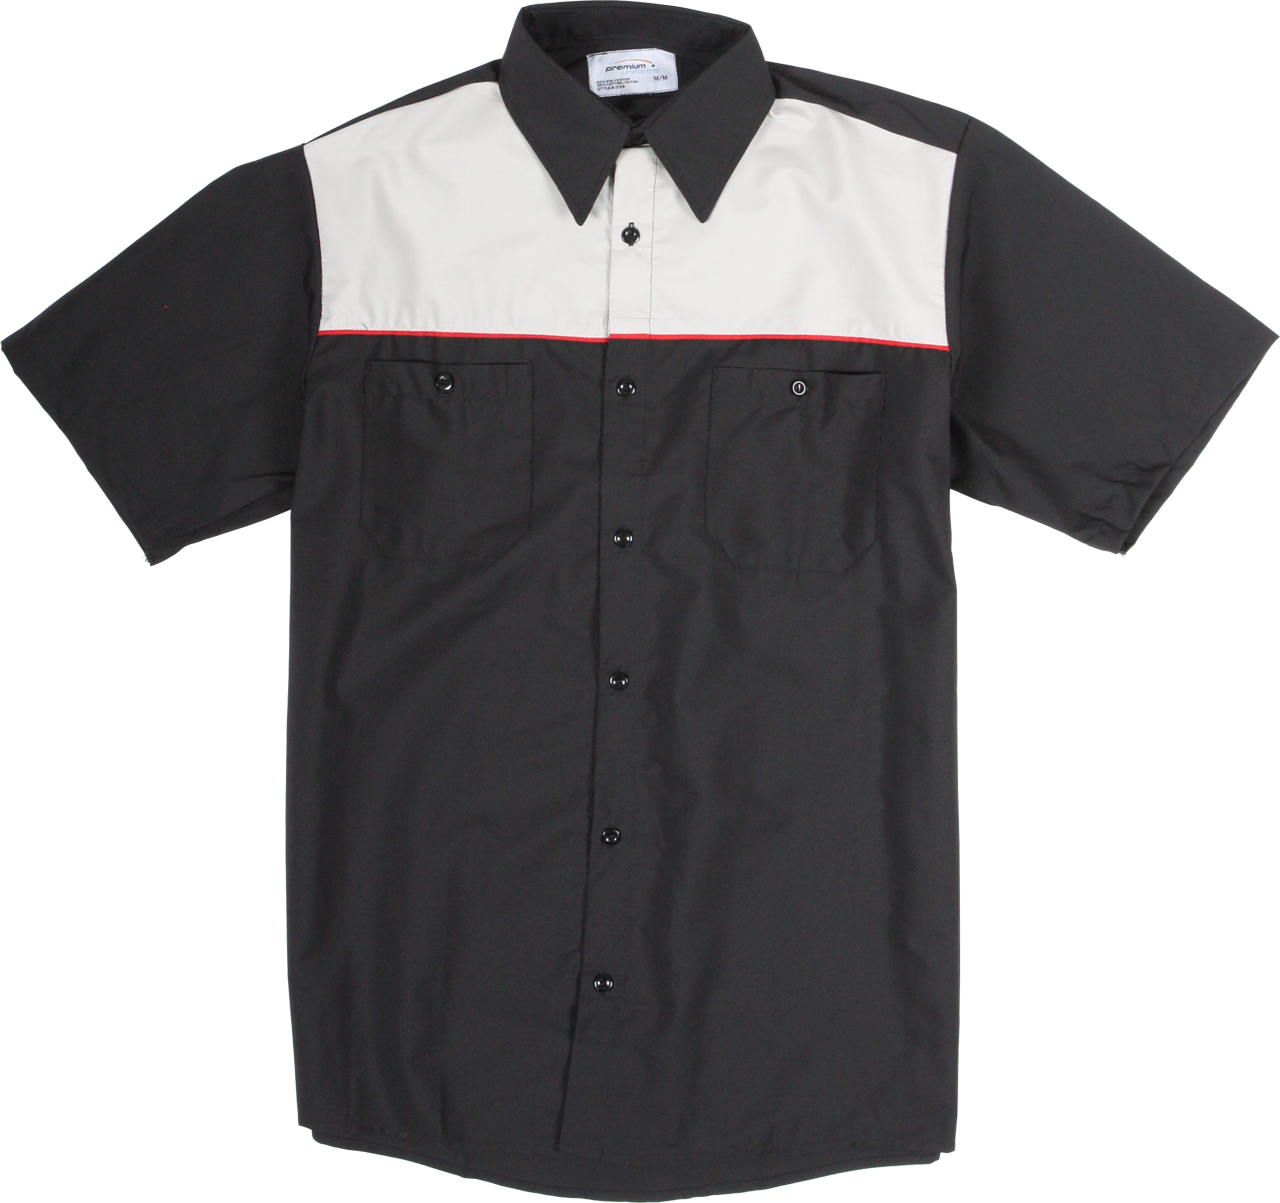 Picture of Premium Uniforms Short Sleeve Two-Tone Work Shirt